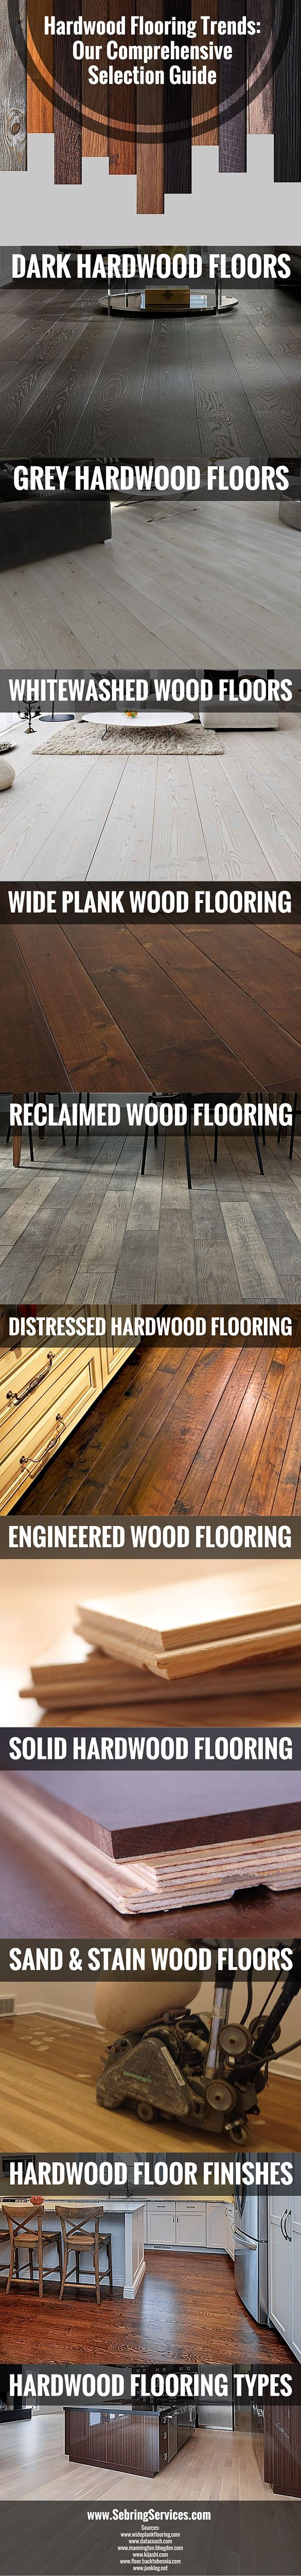 hardwood floor refinishing tulsa ok of 25 best house images by barb bettiga on pinterest cubicles desk within hardwood flooring trends our comprehensive selection guide